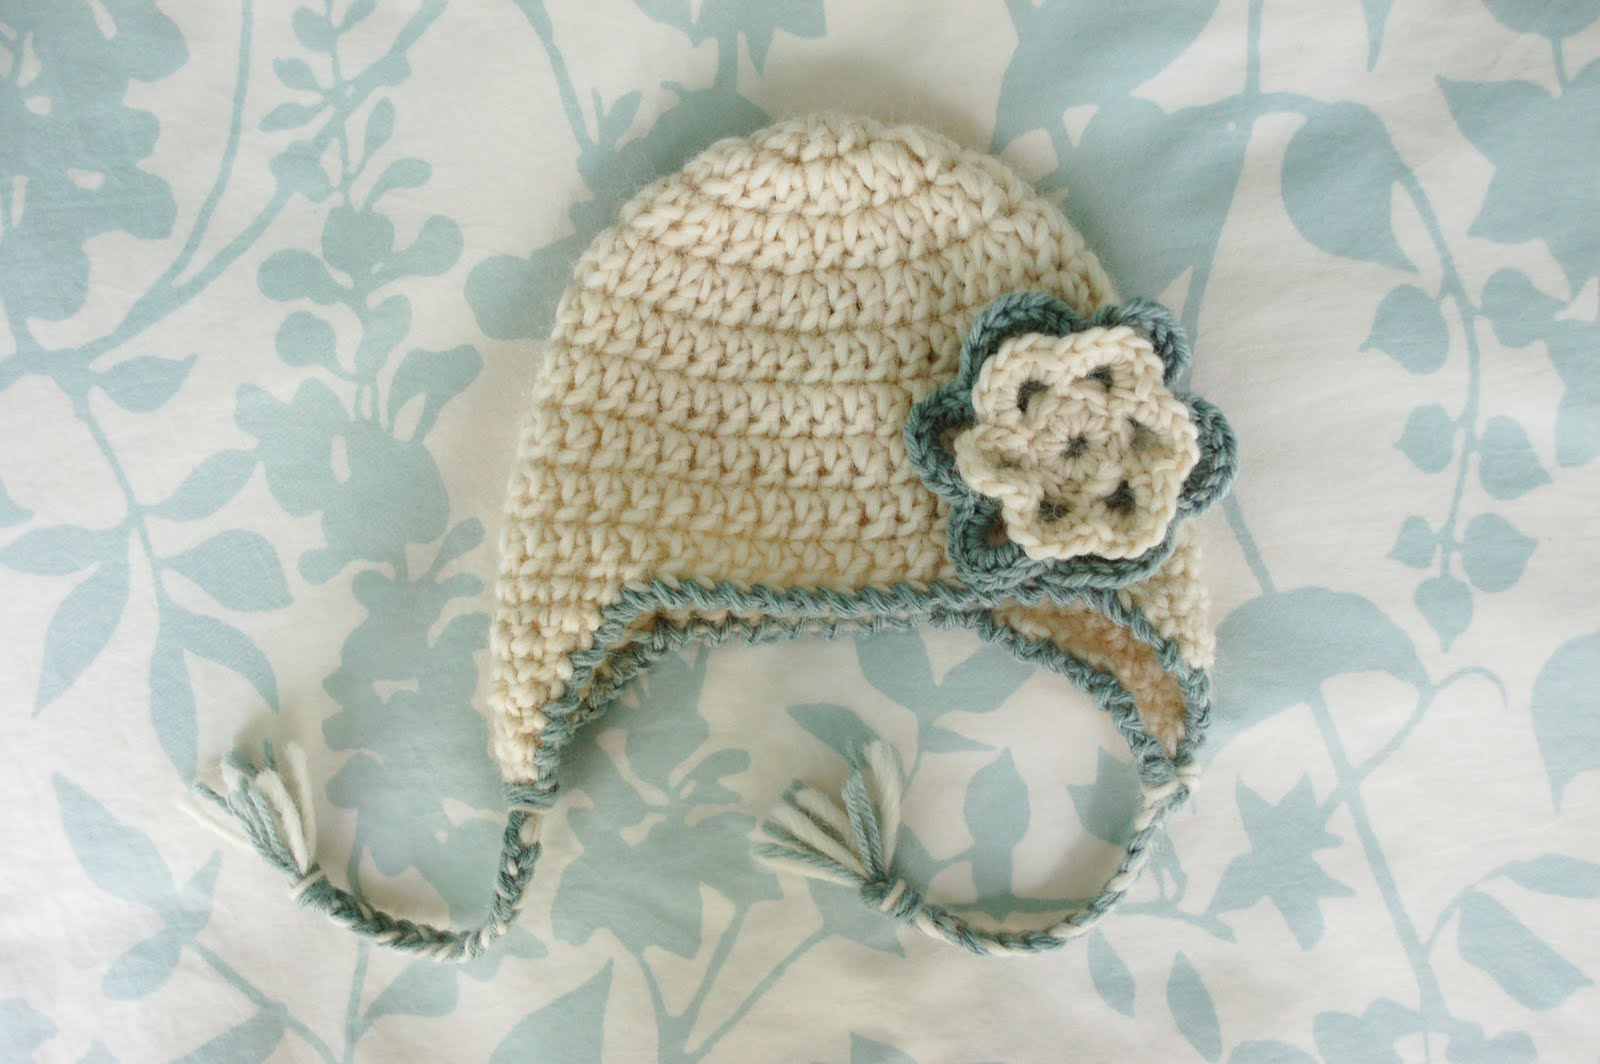 Free Crochet Patterns For Earflap Hats : Alli Crafts: Free Pattern: Baby Earflap Hat - Newborn